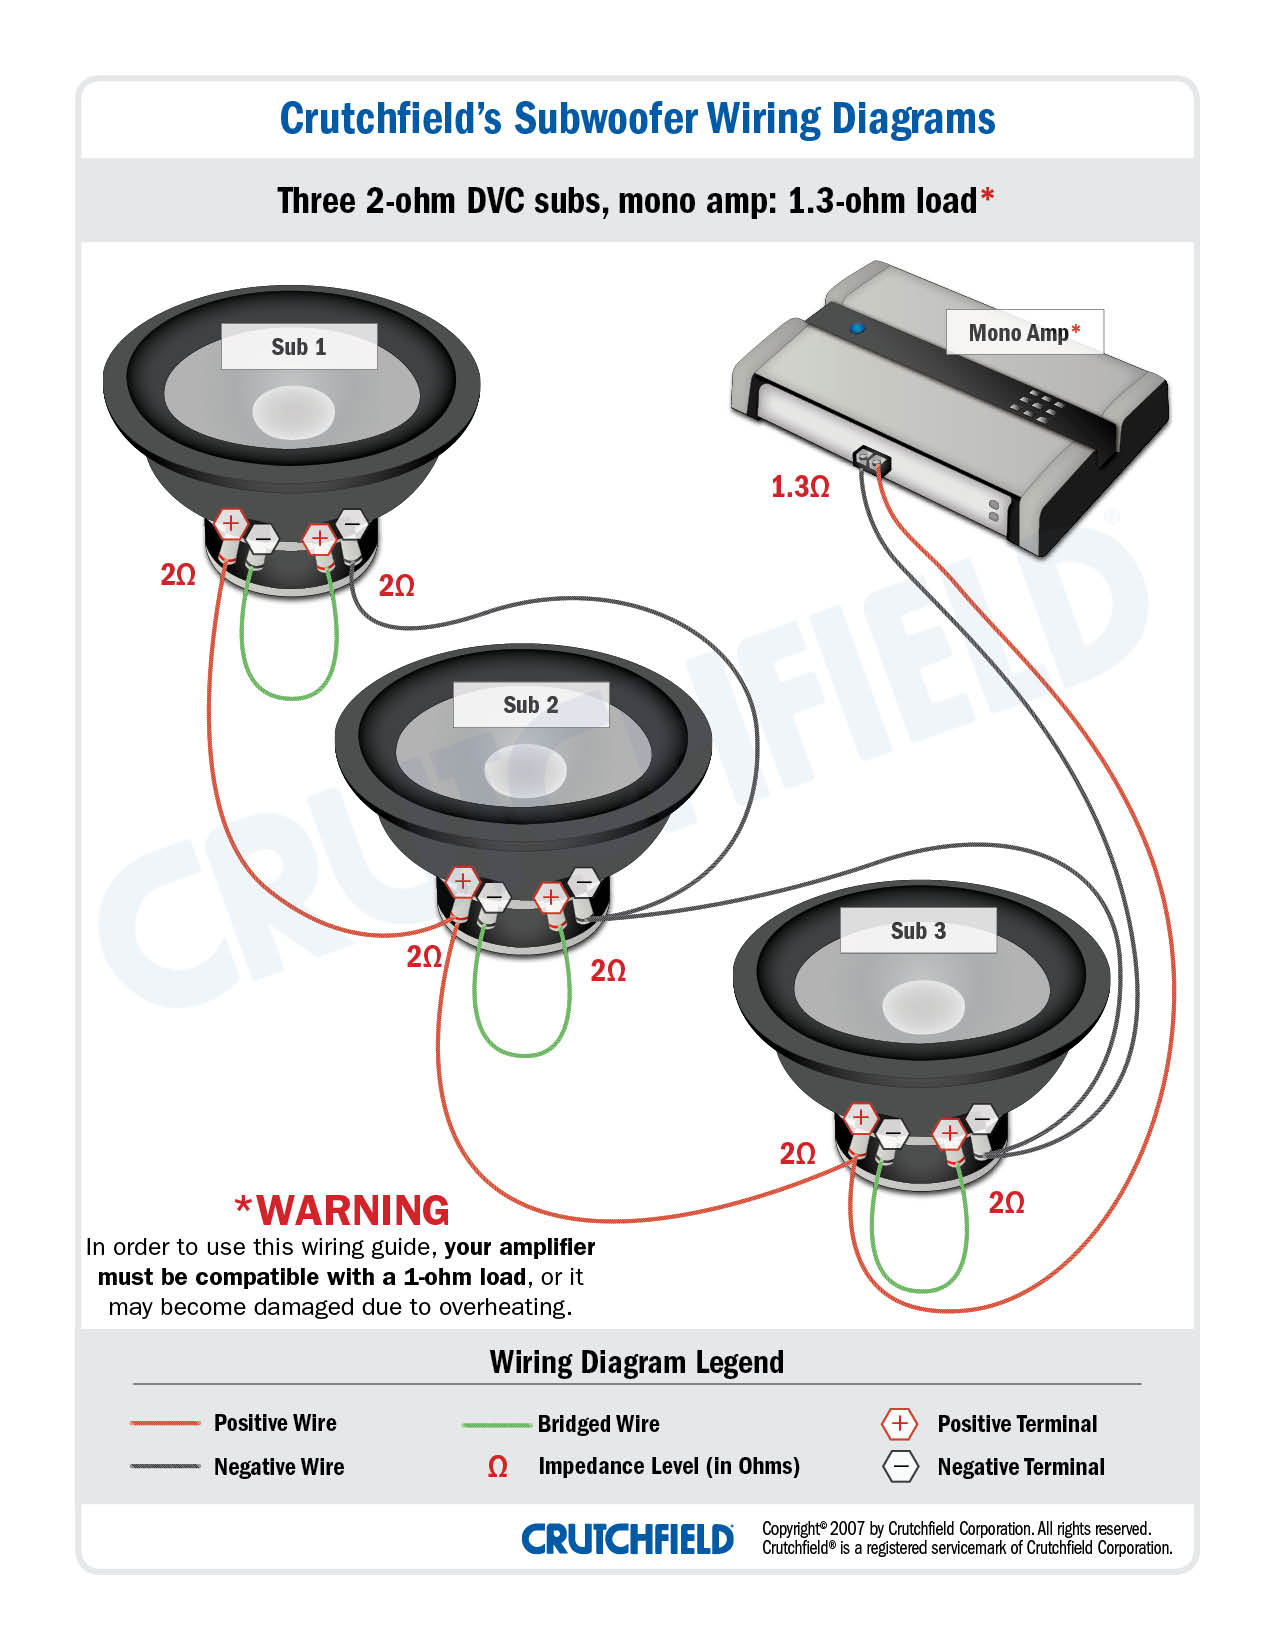 3 DVC 2 ohm mono low imp wiring subwoofers what's all this about ohms? nitro bmw 2 way wiring diagram at gsmportal.co